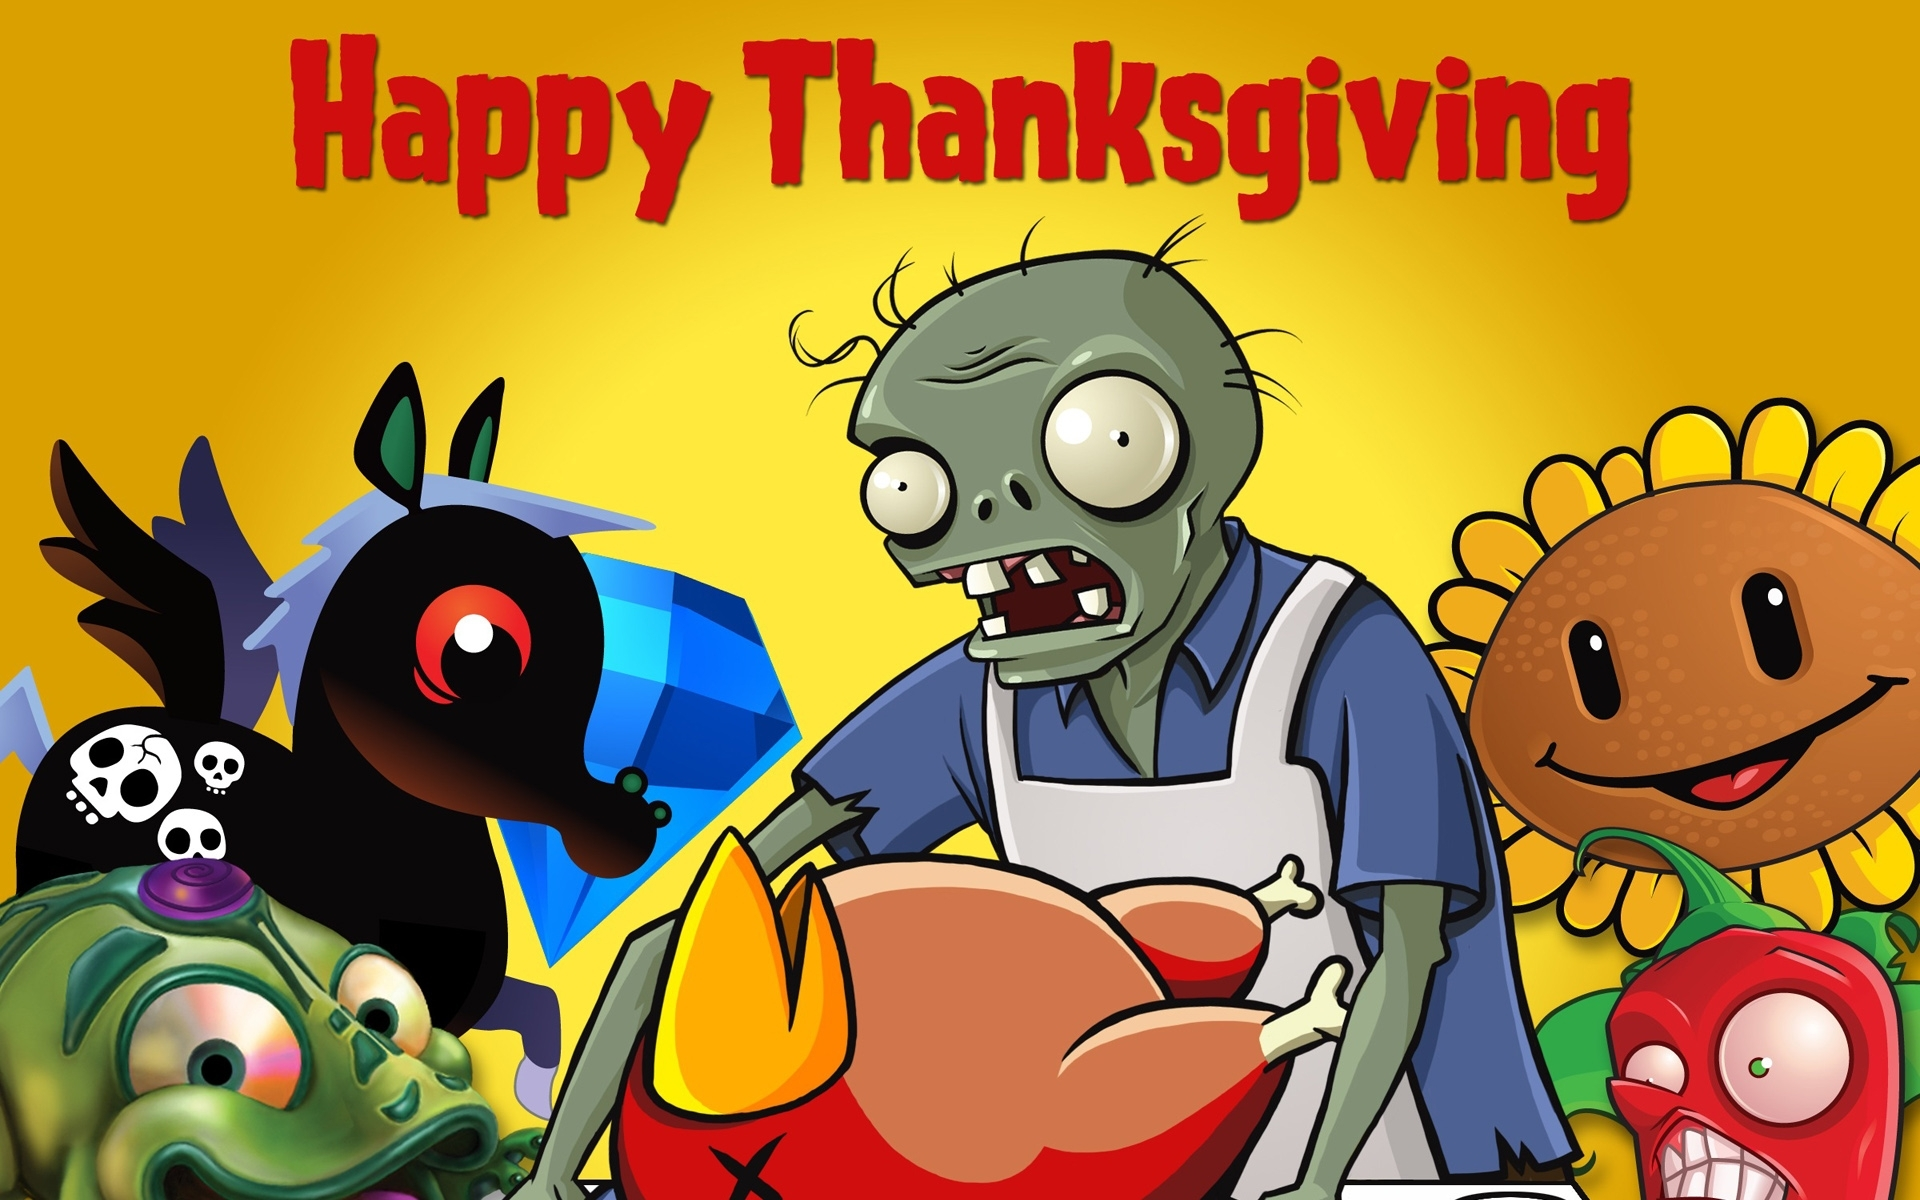 Funny thanks giving day hd free wallpaper voltagebd Image collections